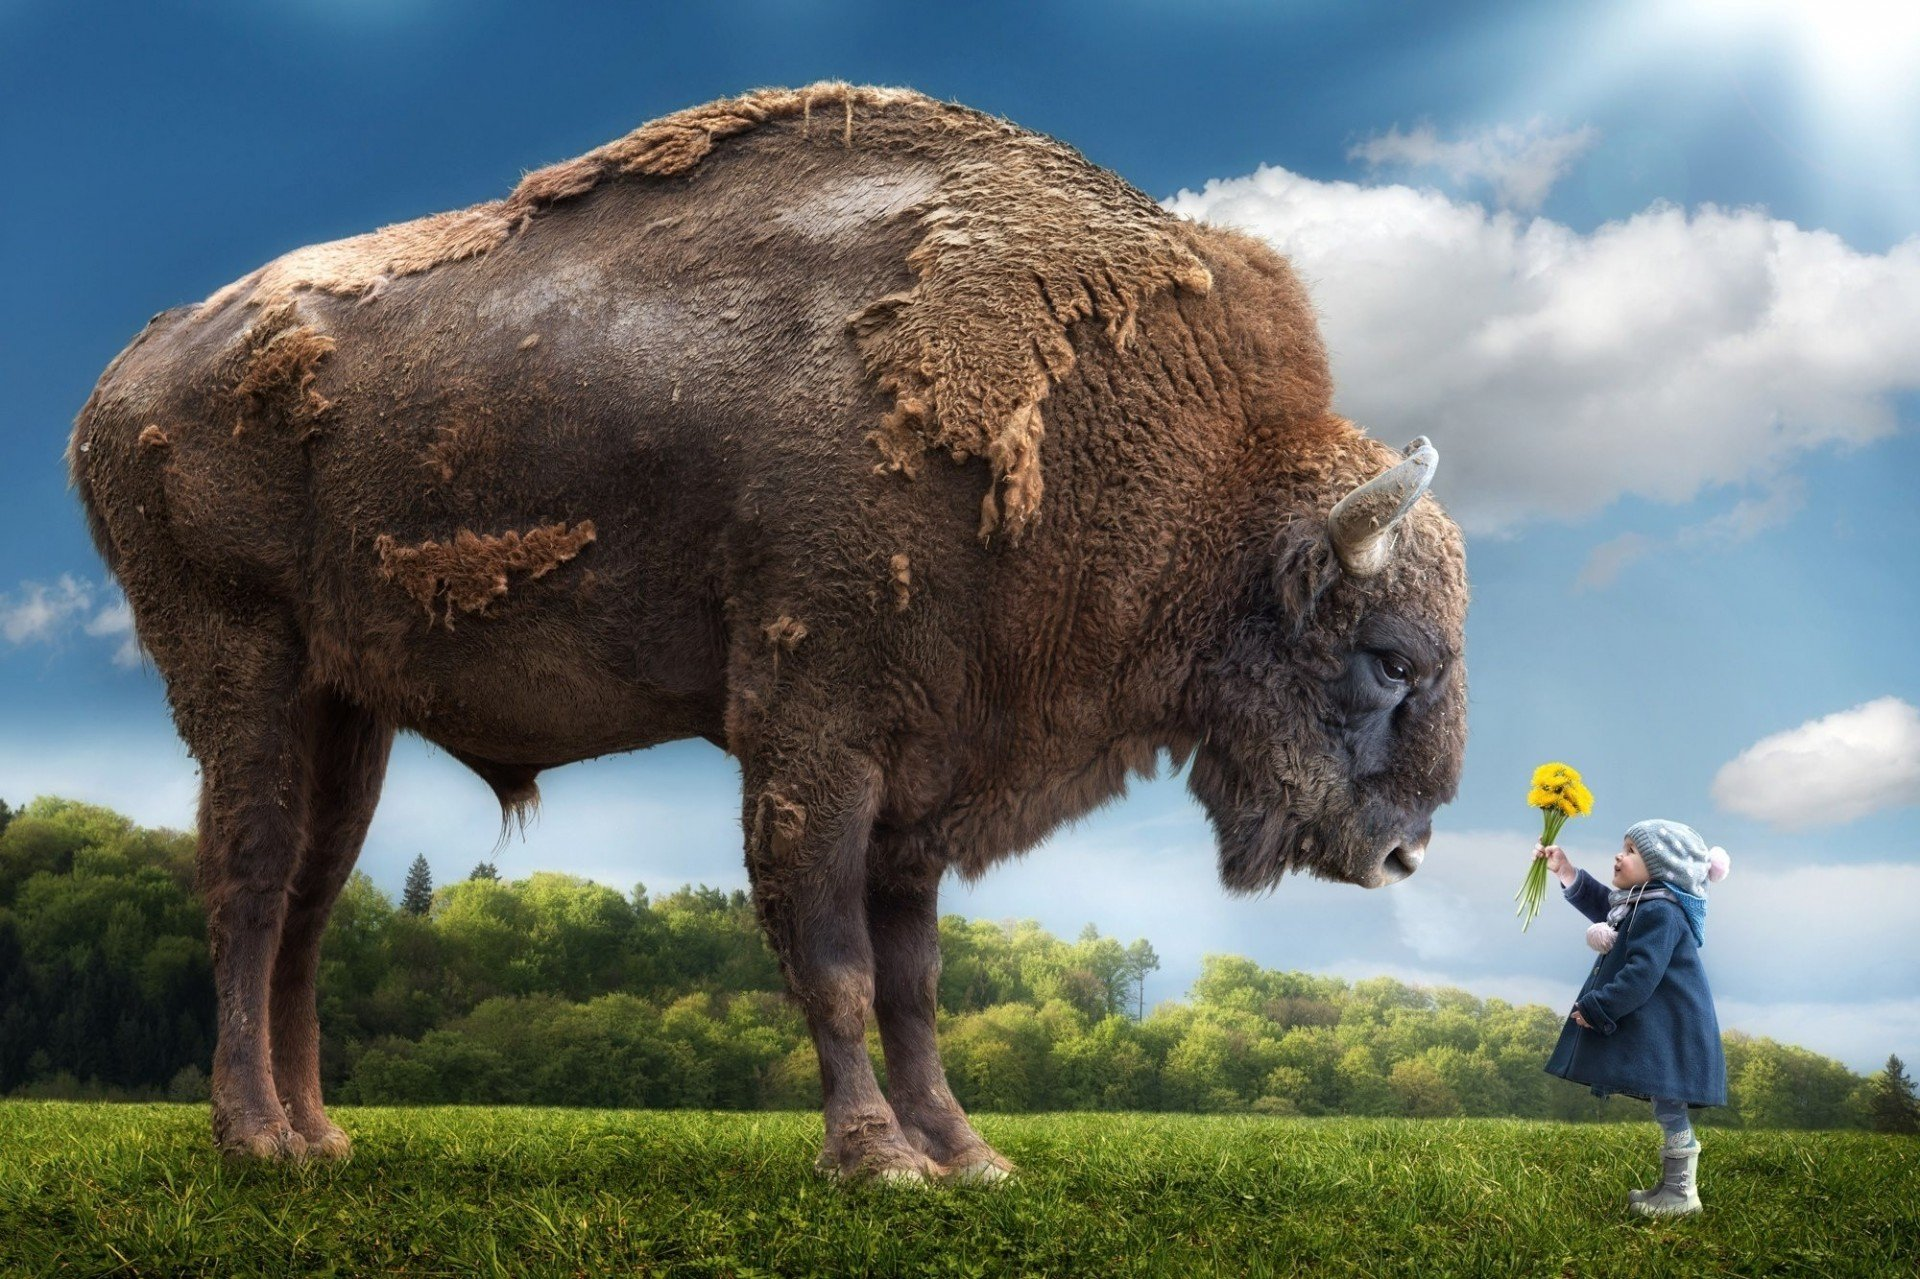 Surrealism Hd Wallpapers Backgrounds High Definition: Bison HD Wallpapers